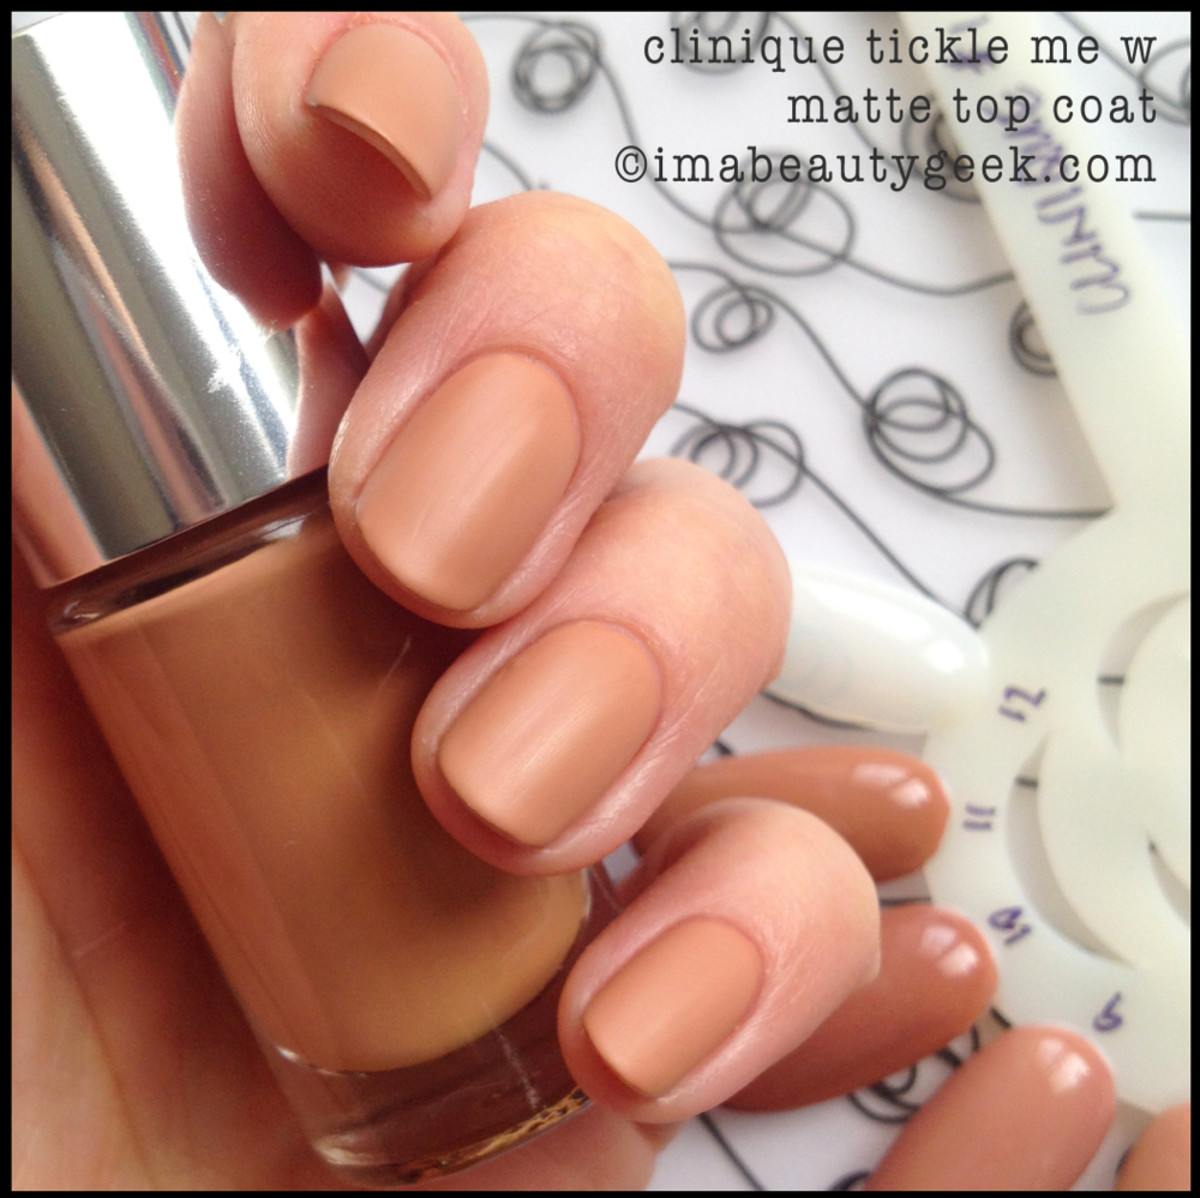 Clinique Nail Polish Nude Tickle Me w Matte Top Coat